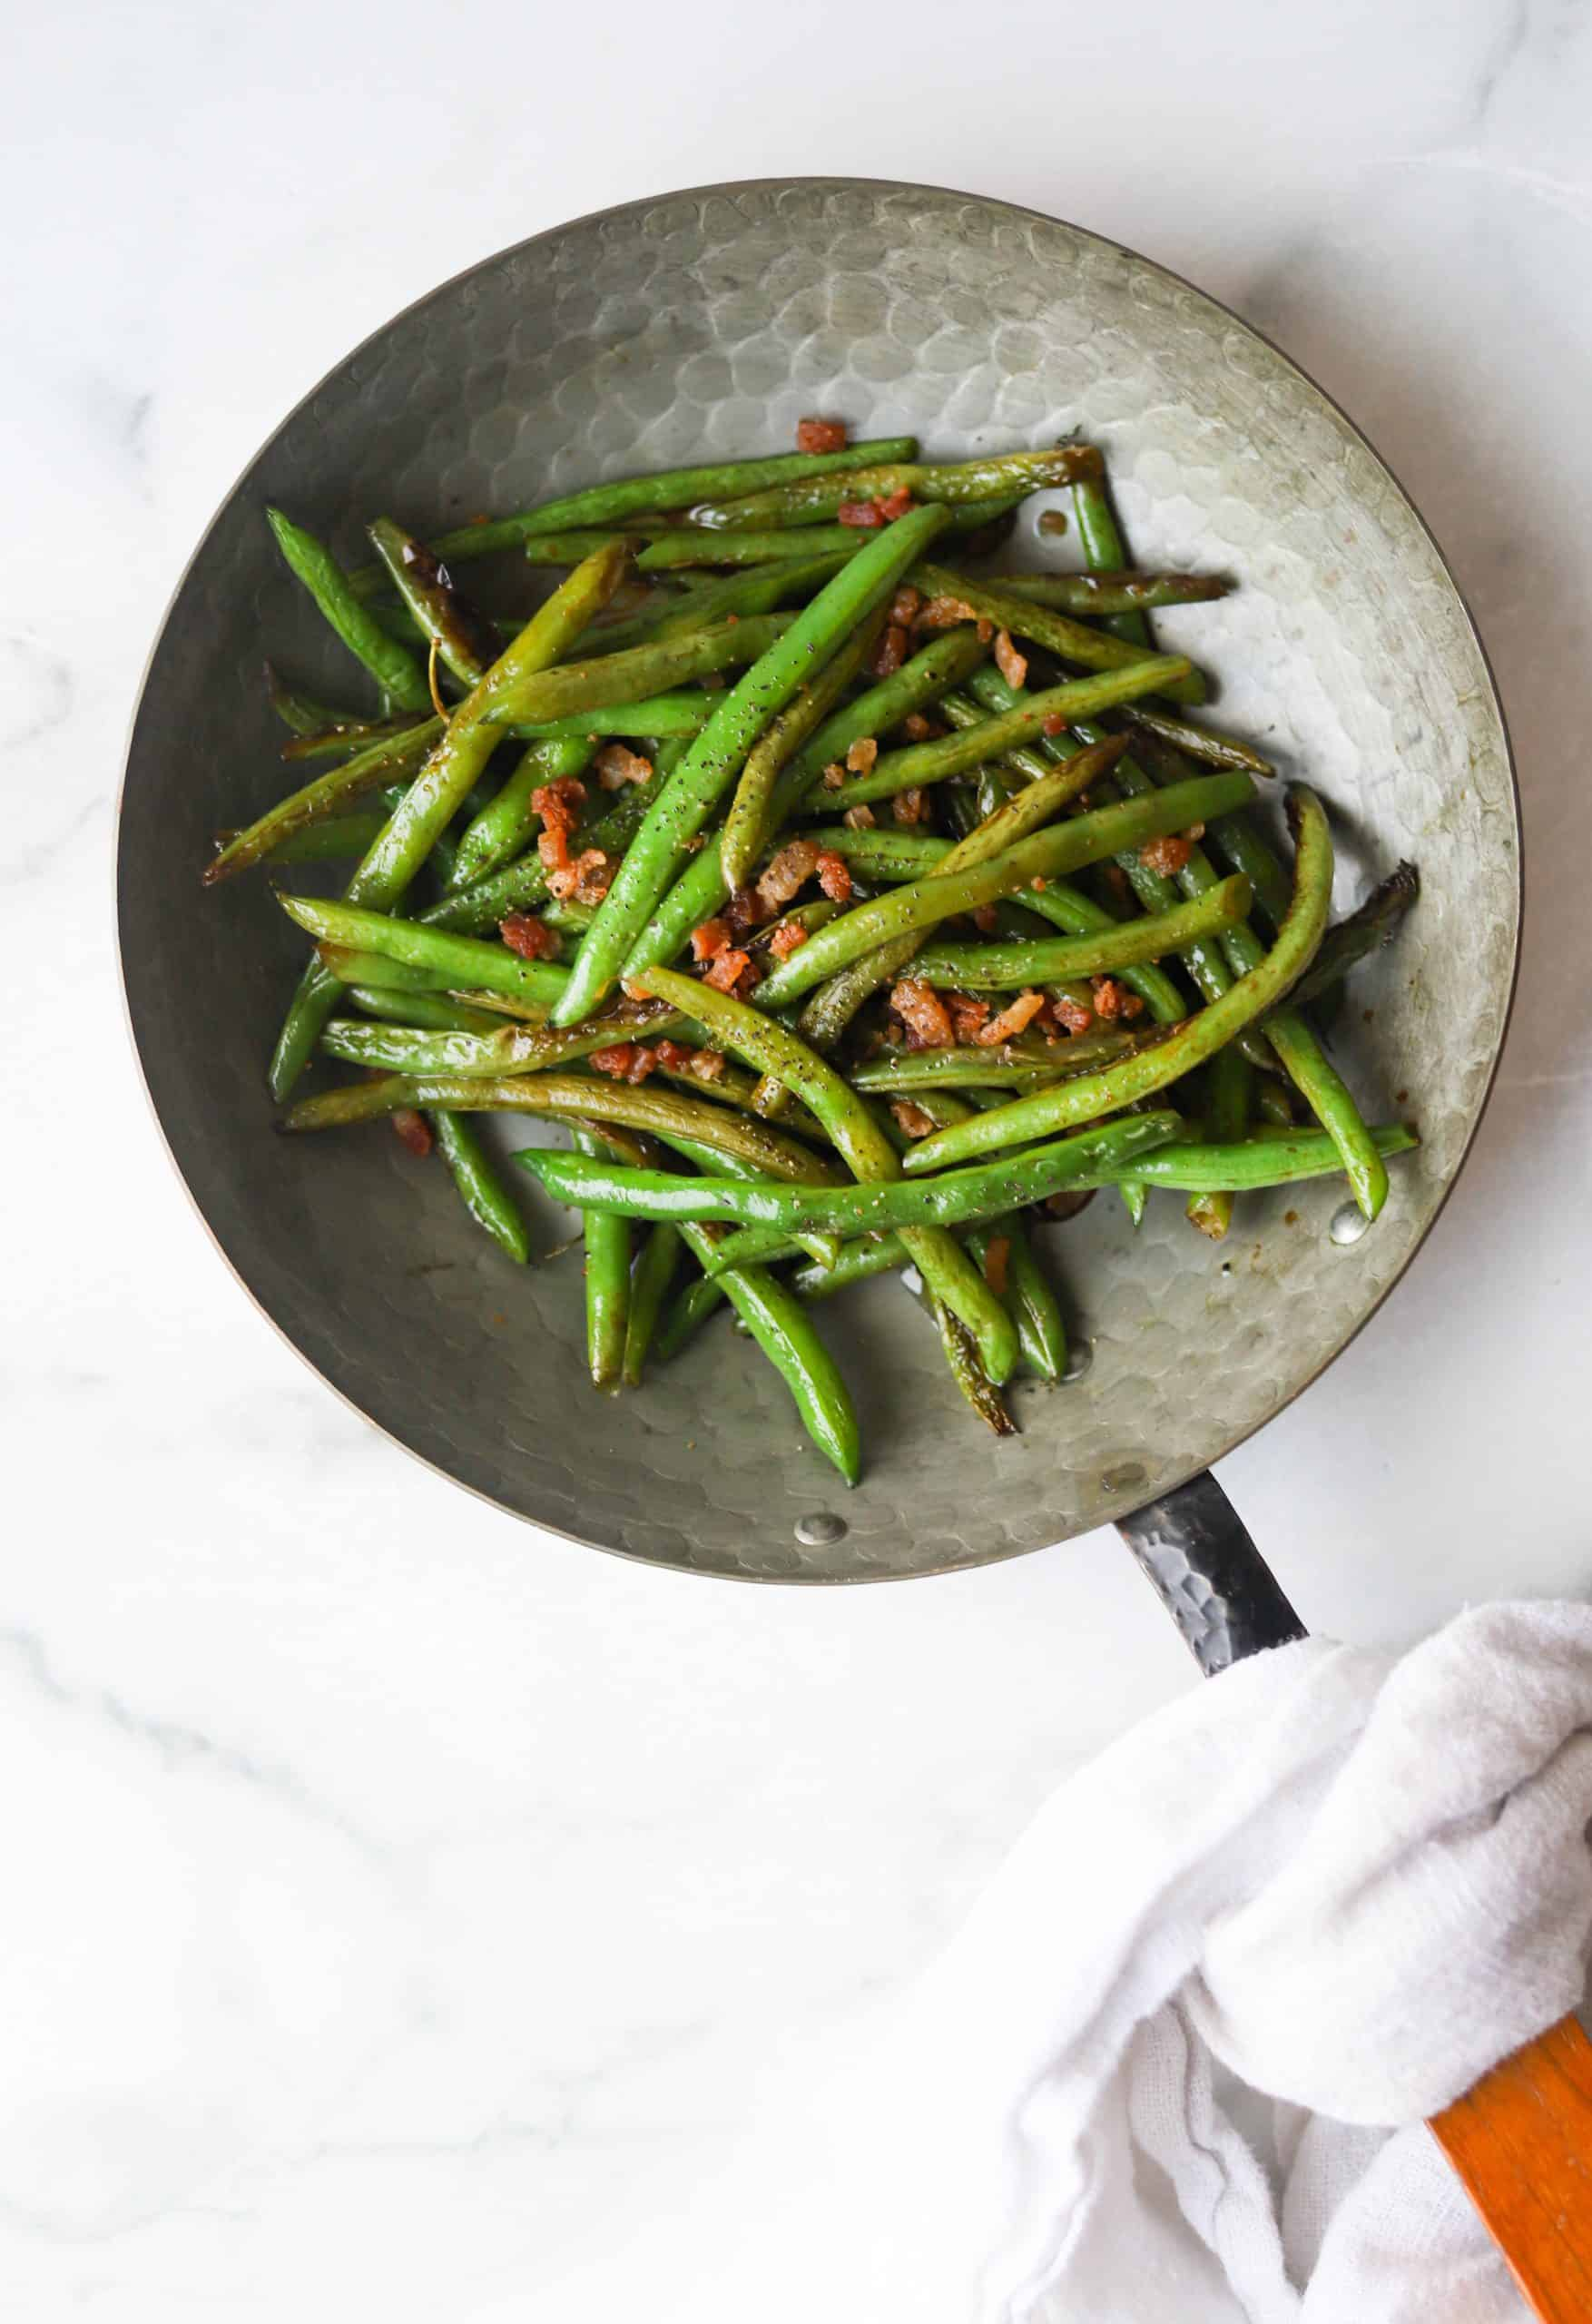 Green beans in a copper pan